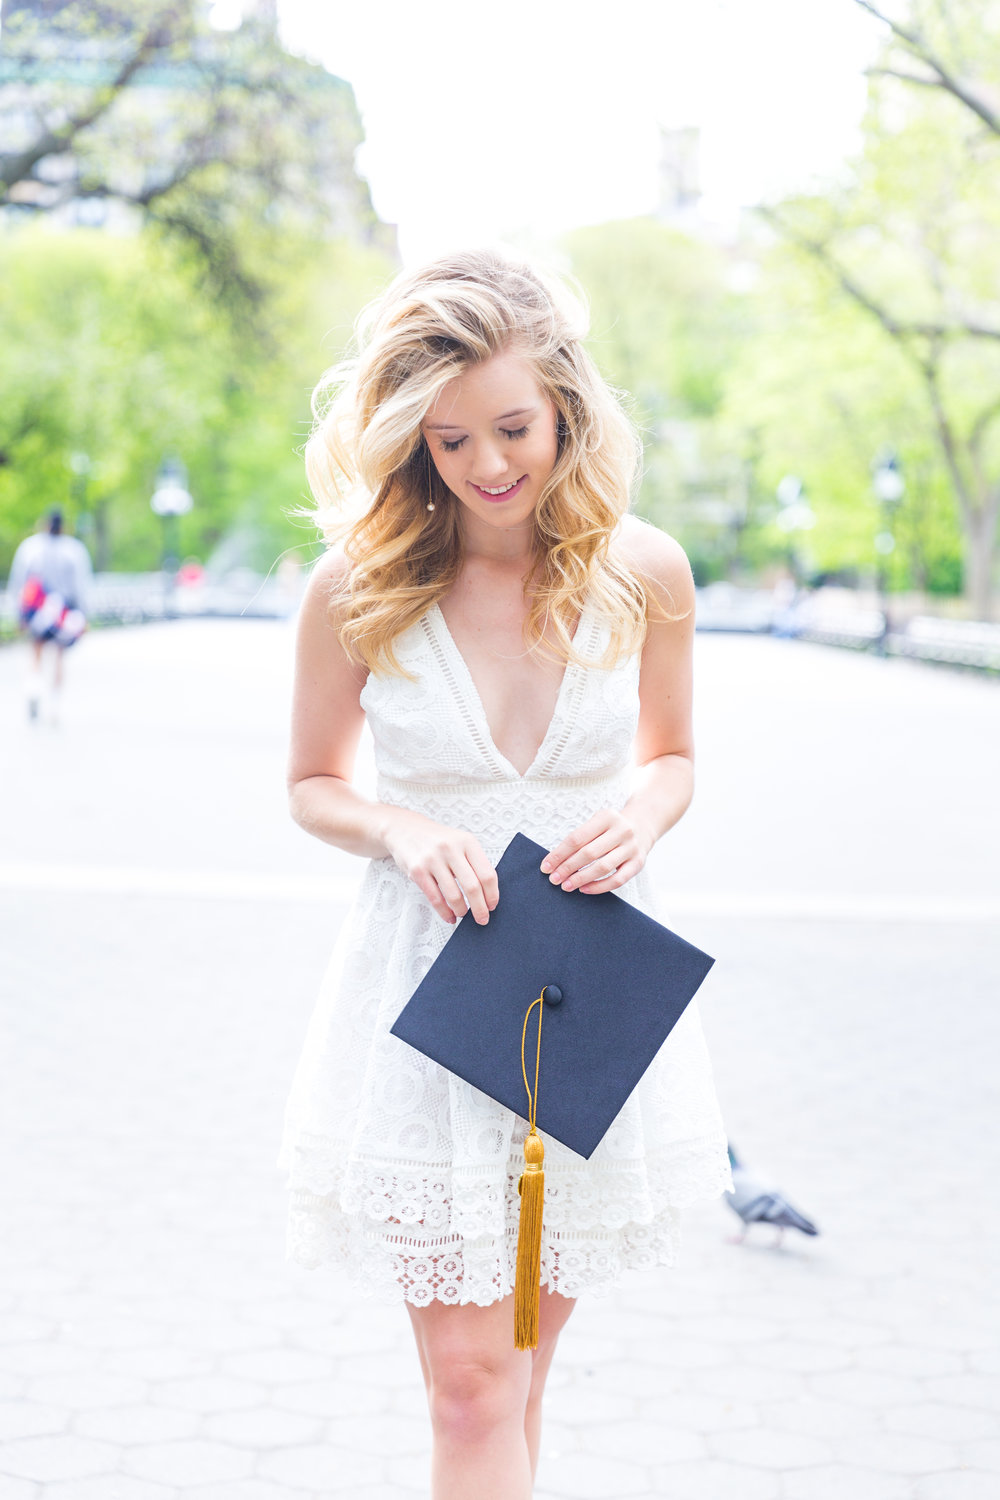 White NYU College Graduation Dress Spring NYC-13.jpg